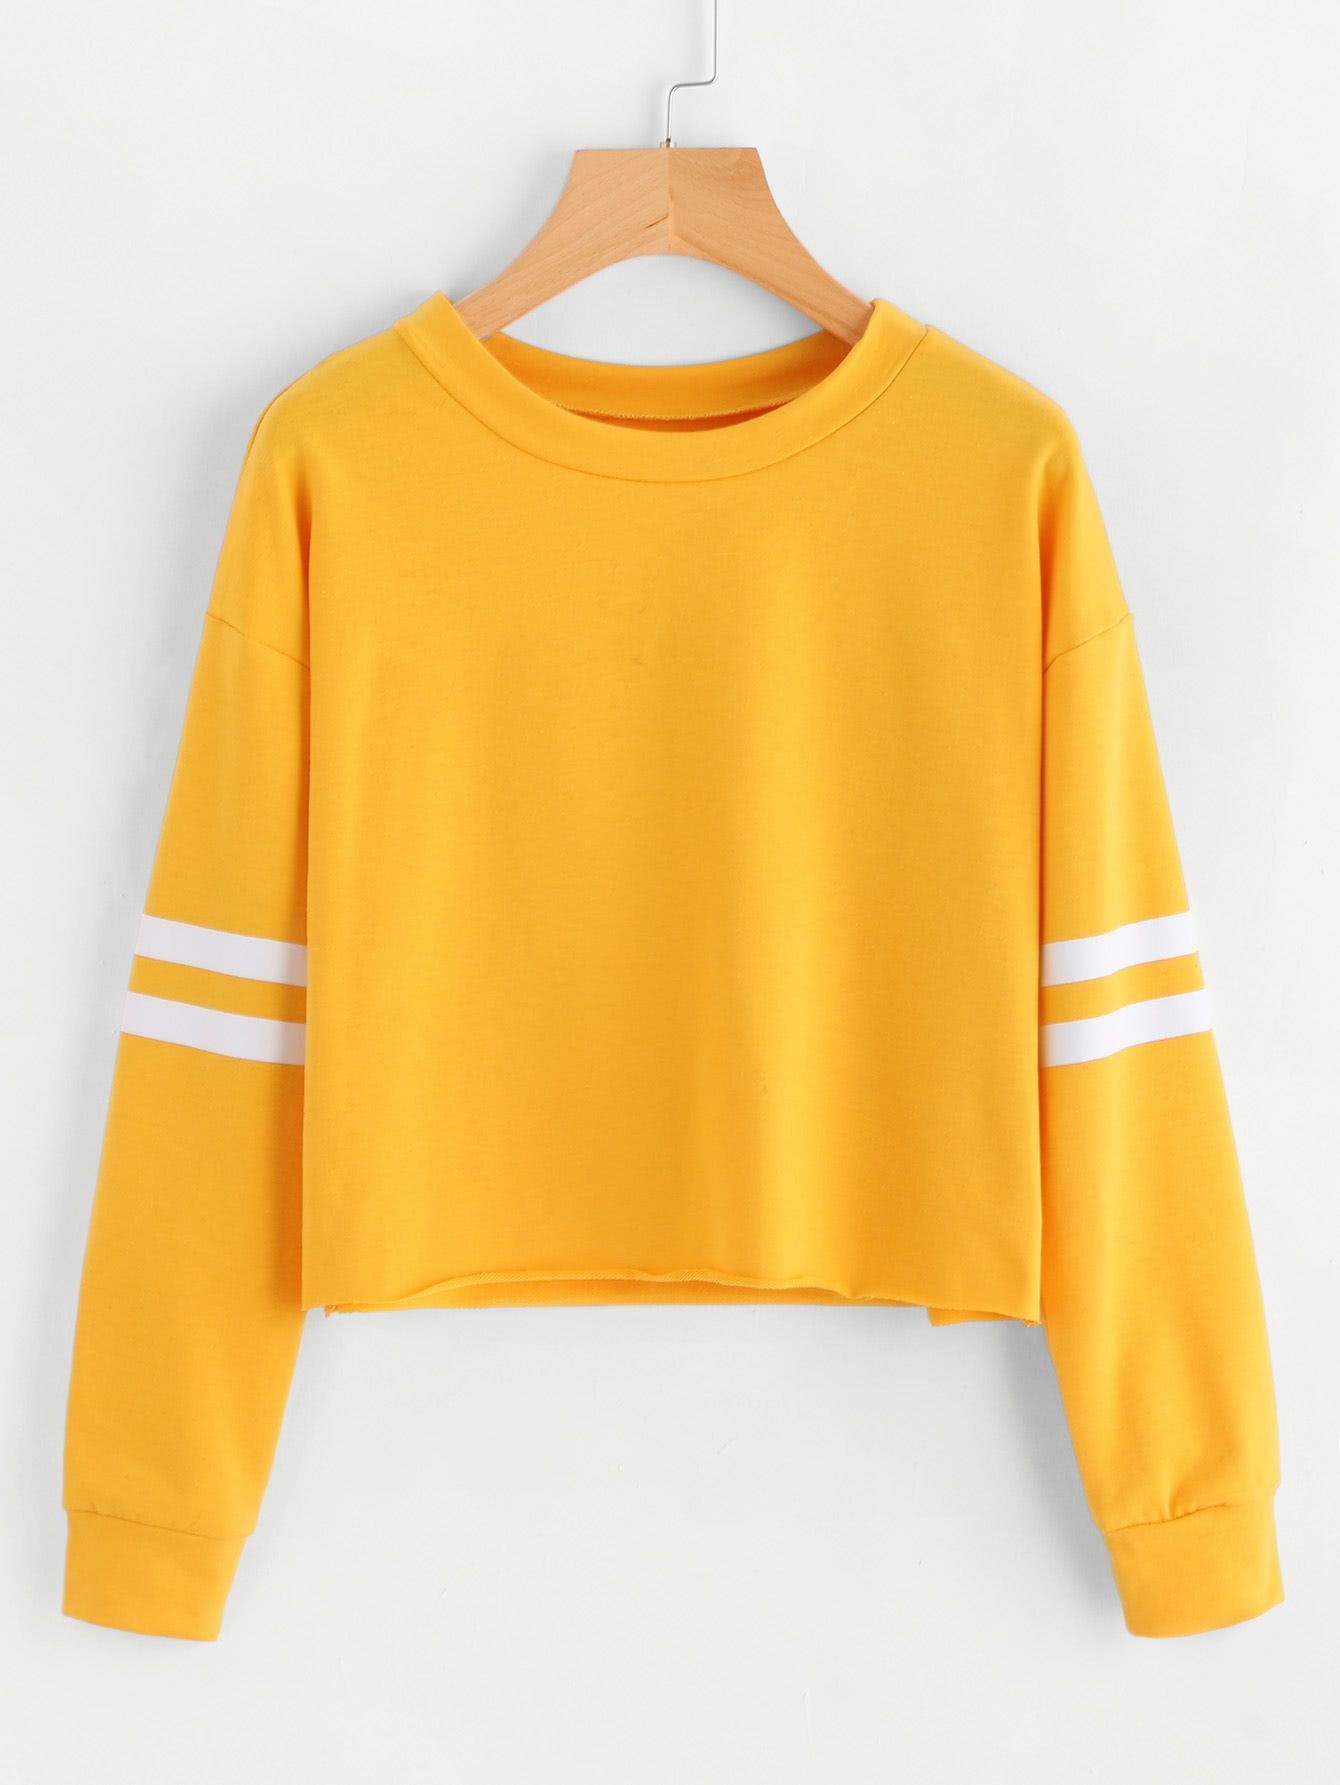 ca9d75698d6d Shop Varsity-Striped Sleeve Sweatshirt online. SheIn offers Varsity-Striped  Sleeve Sweatshirt   more to fit your fashionable needs.